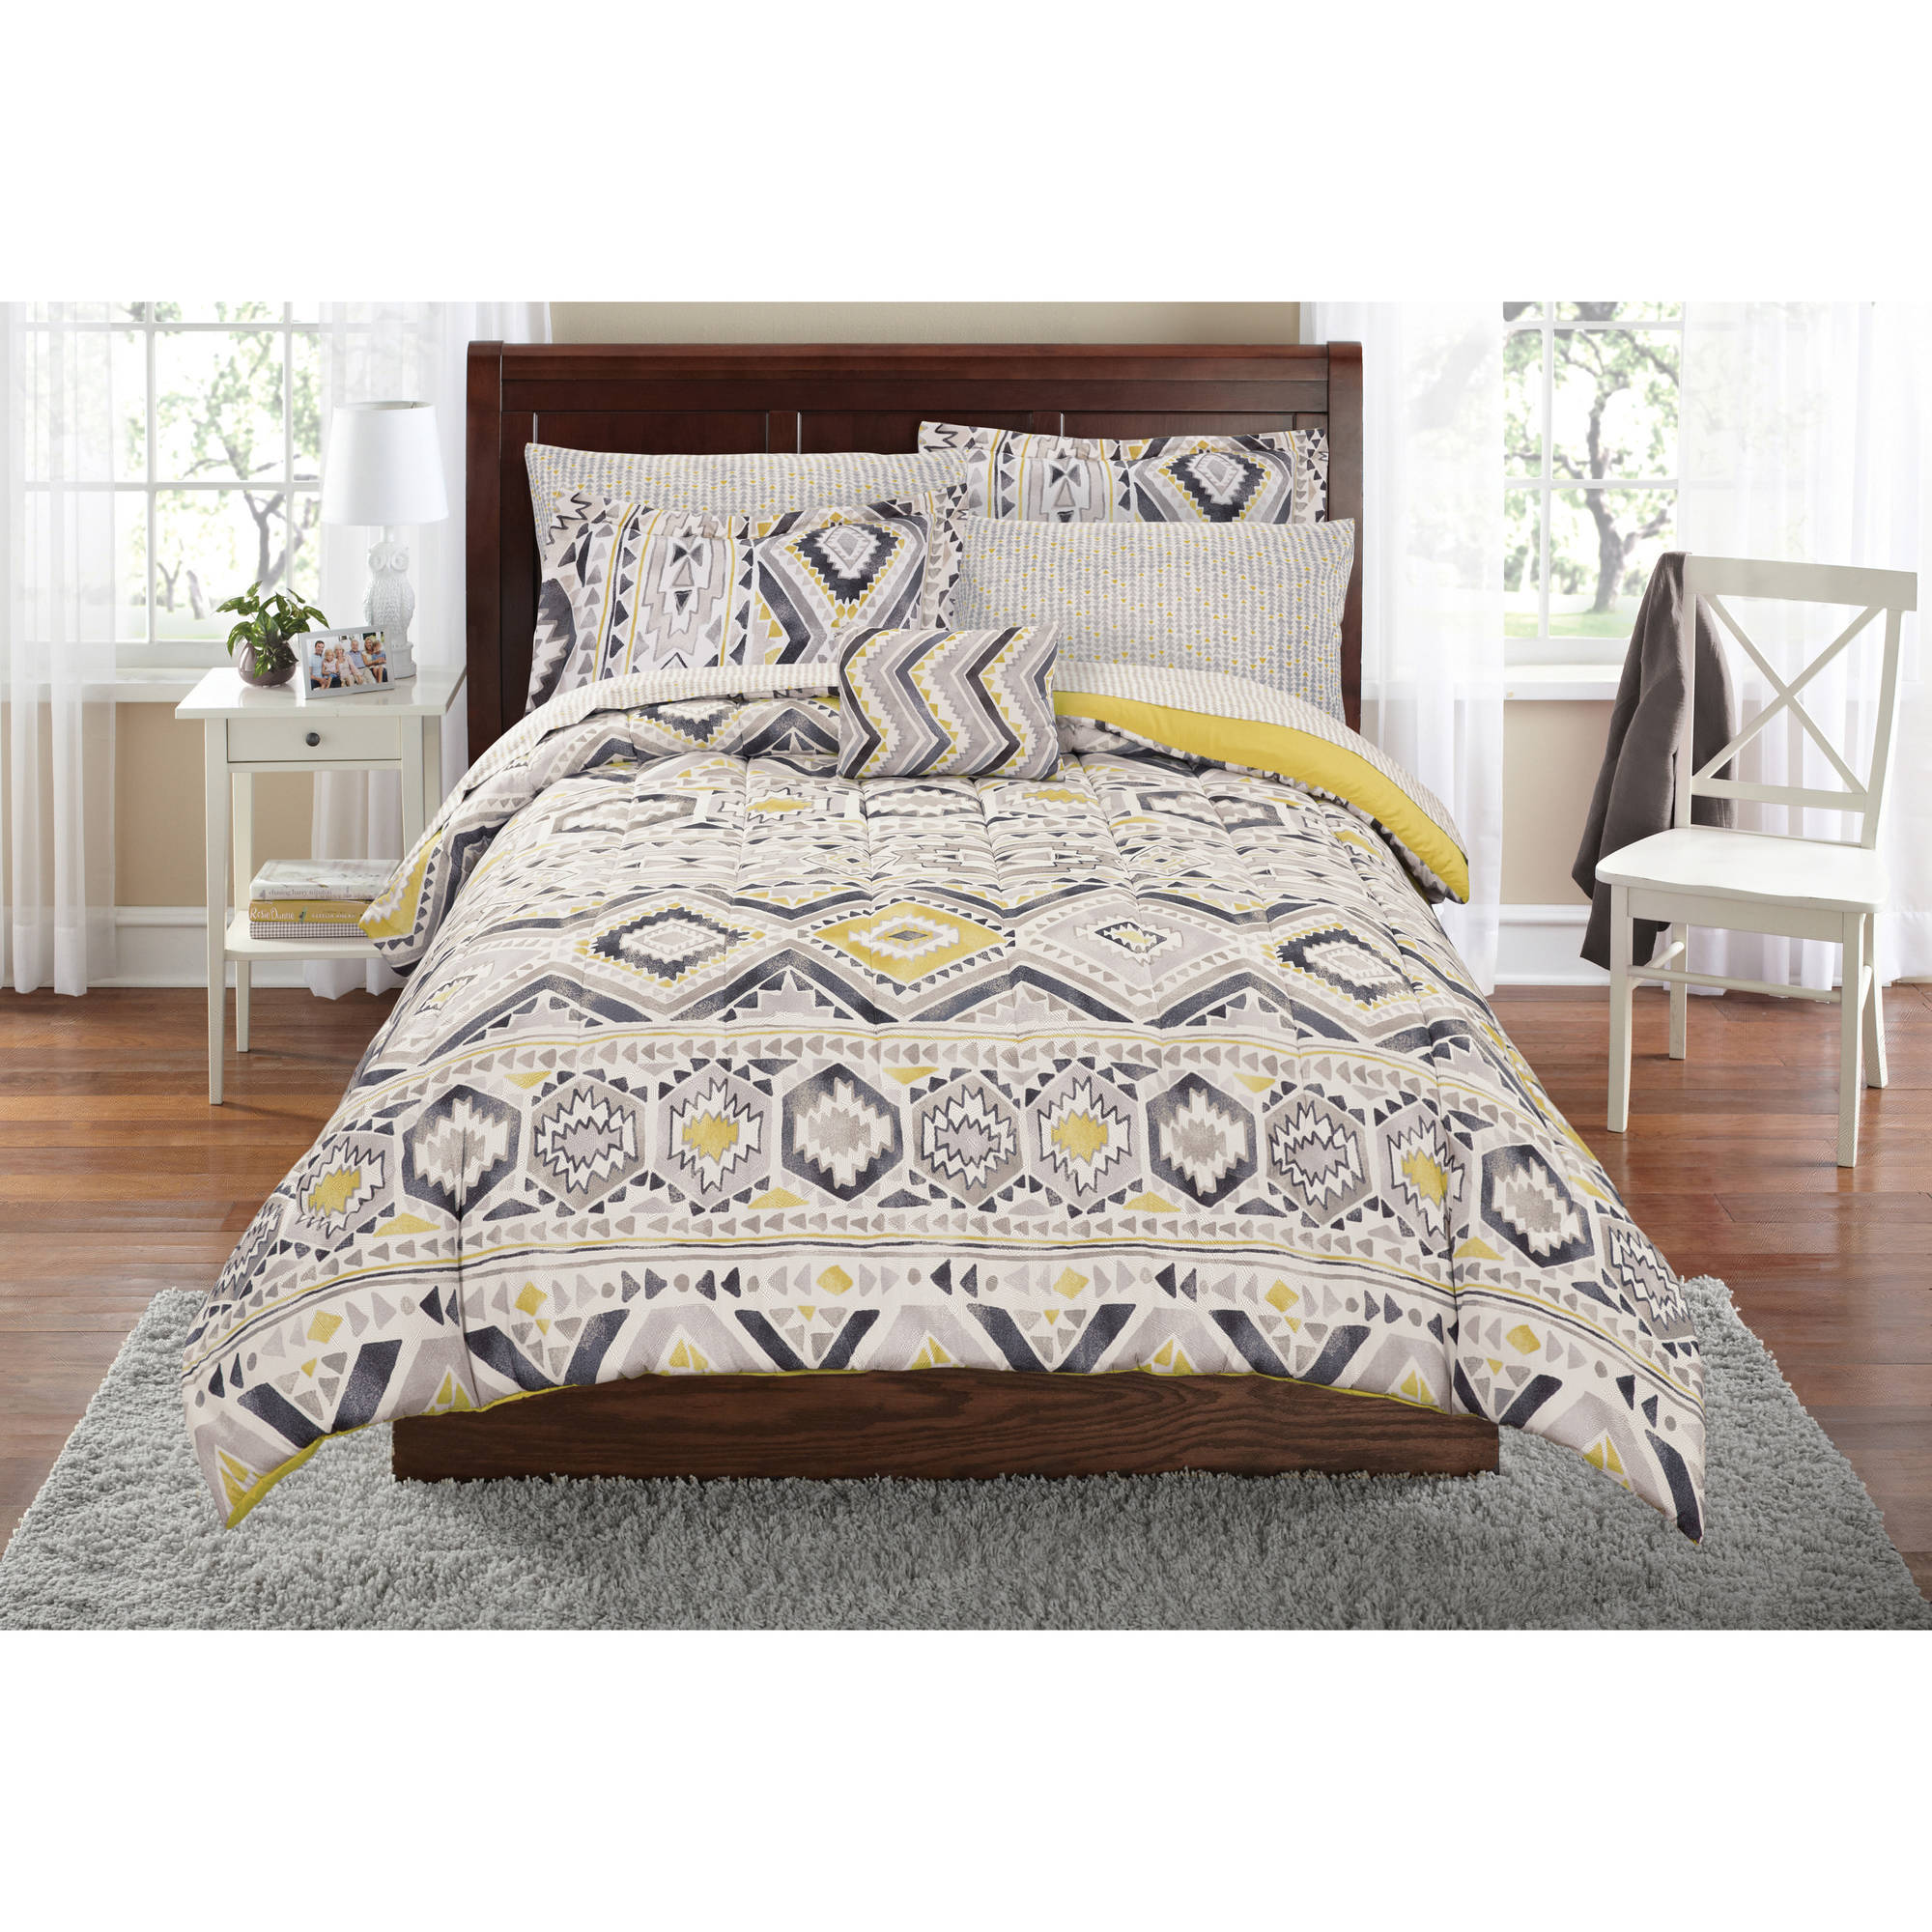 Mainstays Tribal Bed in a Bag Complete Bedding Set